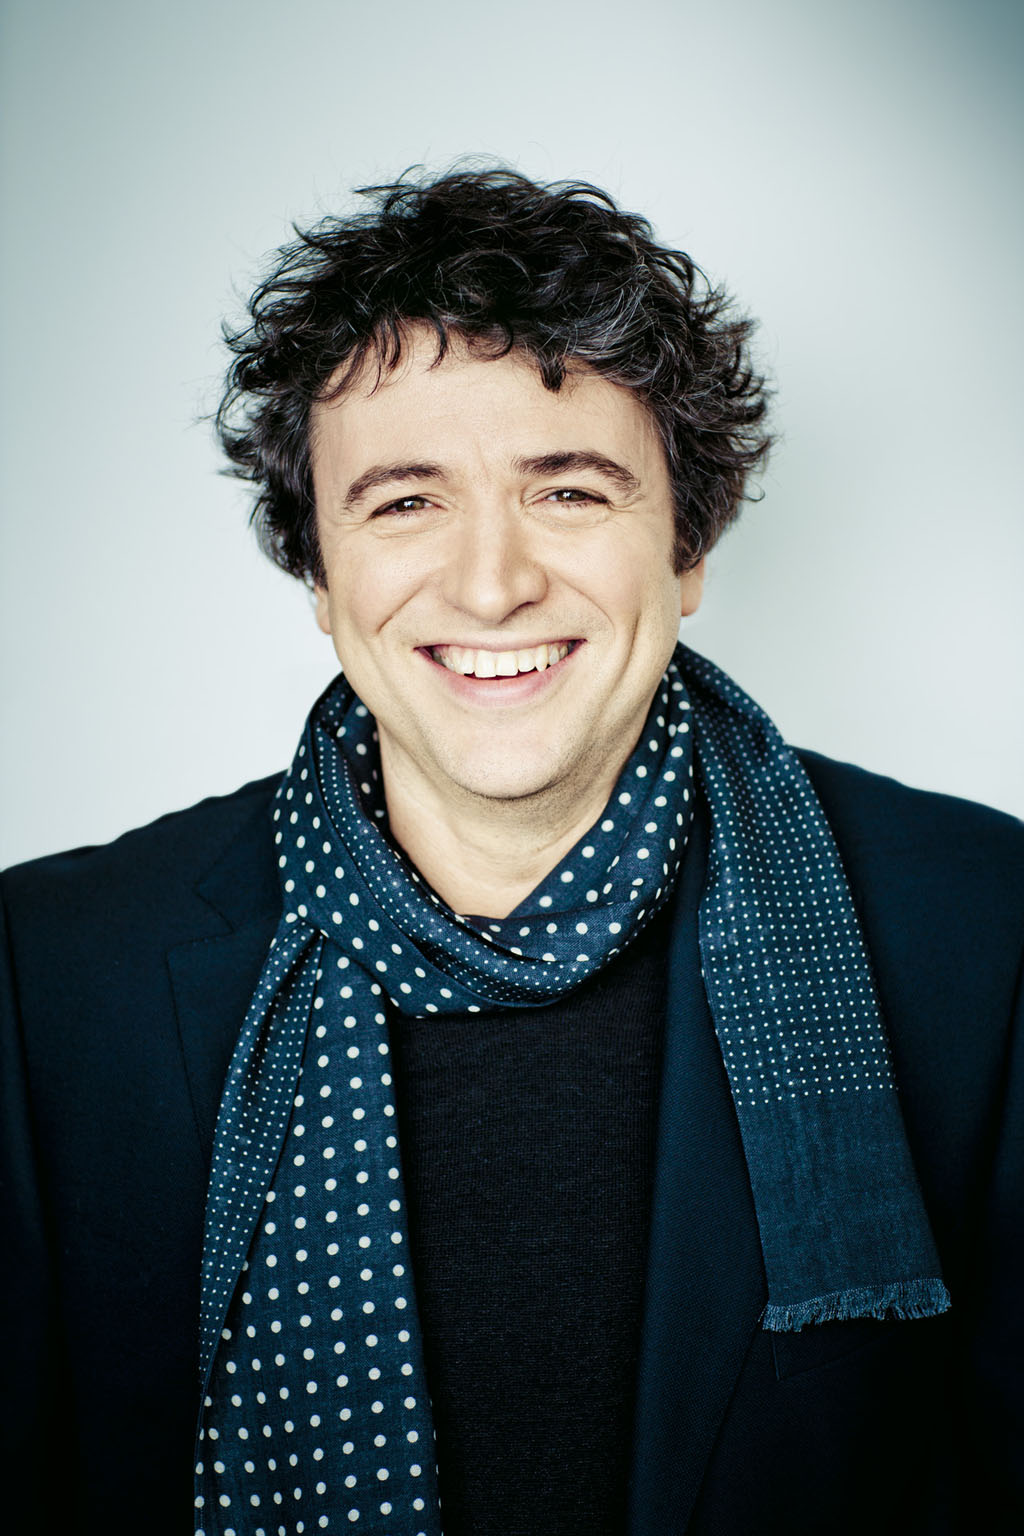 Alain Trudel. (Photo: courtoisie de l'Orchestre symphonique de Laval